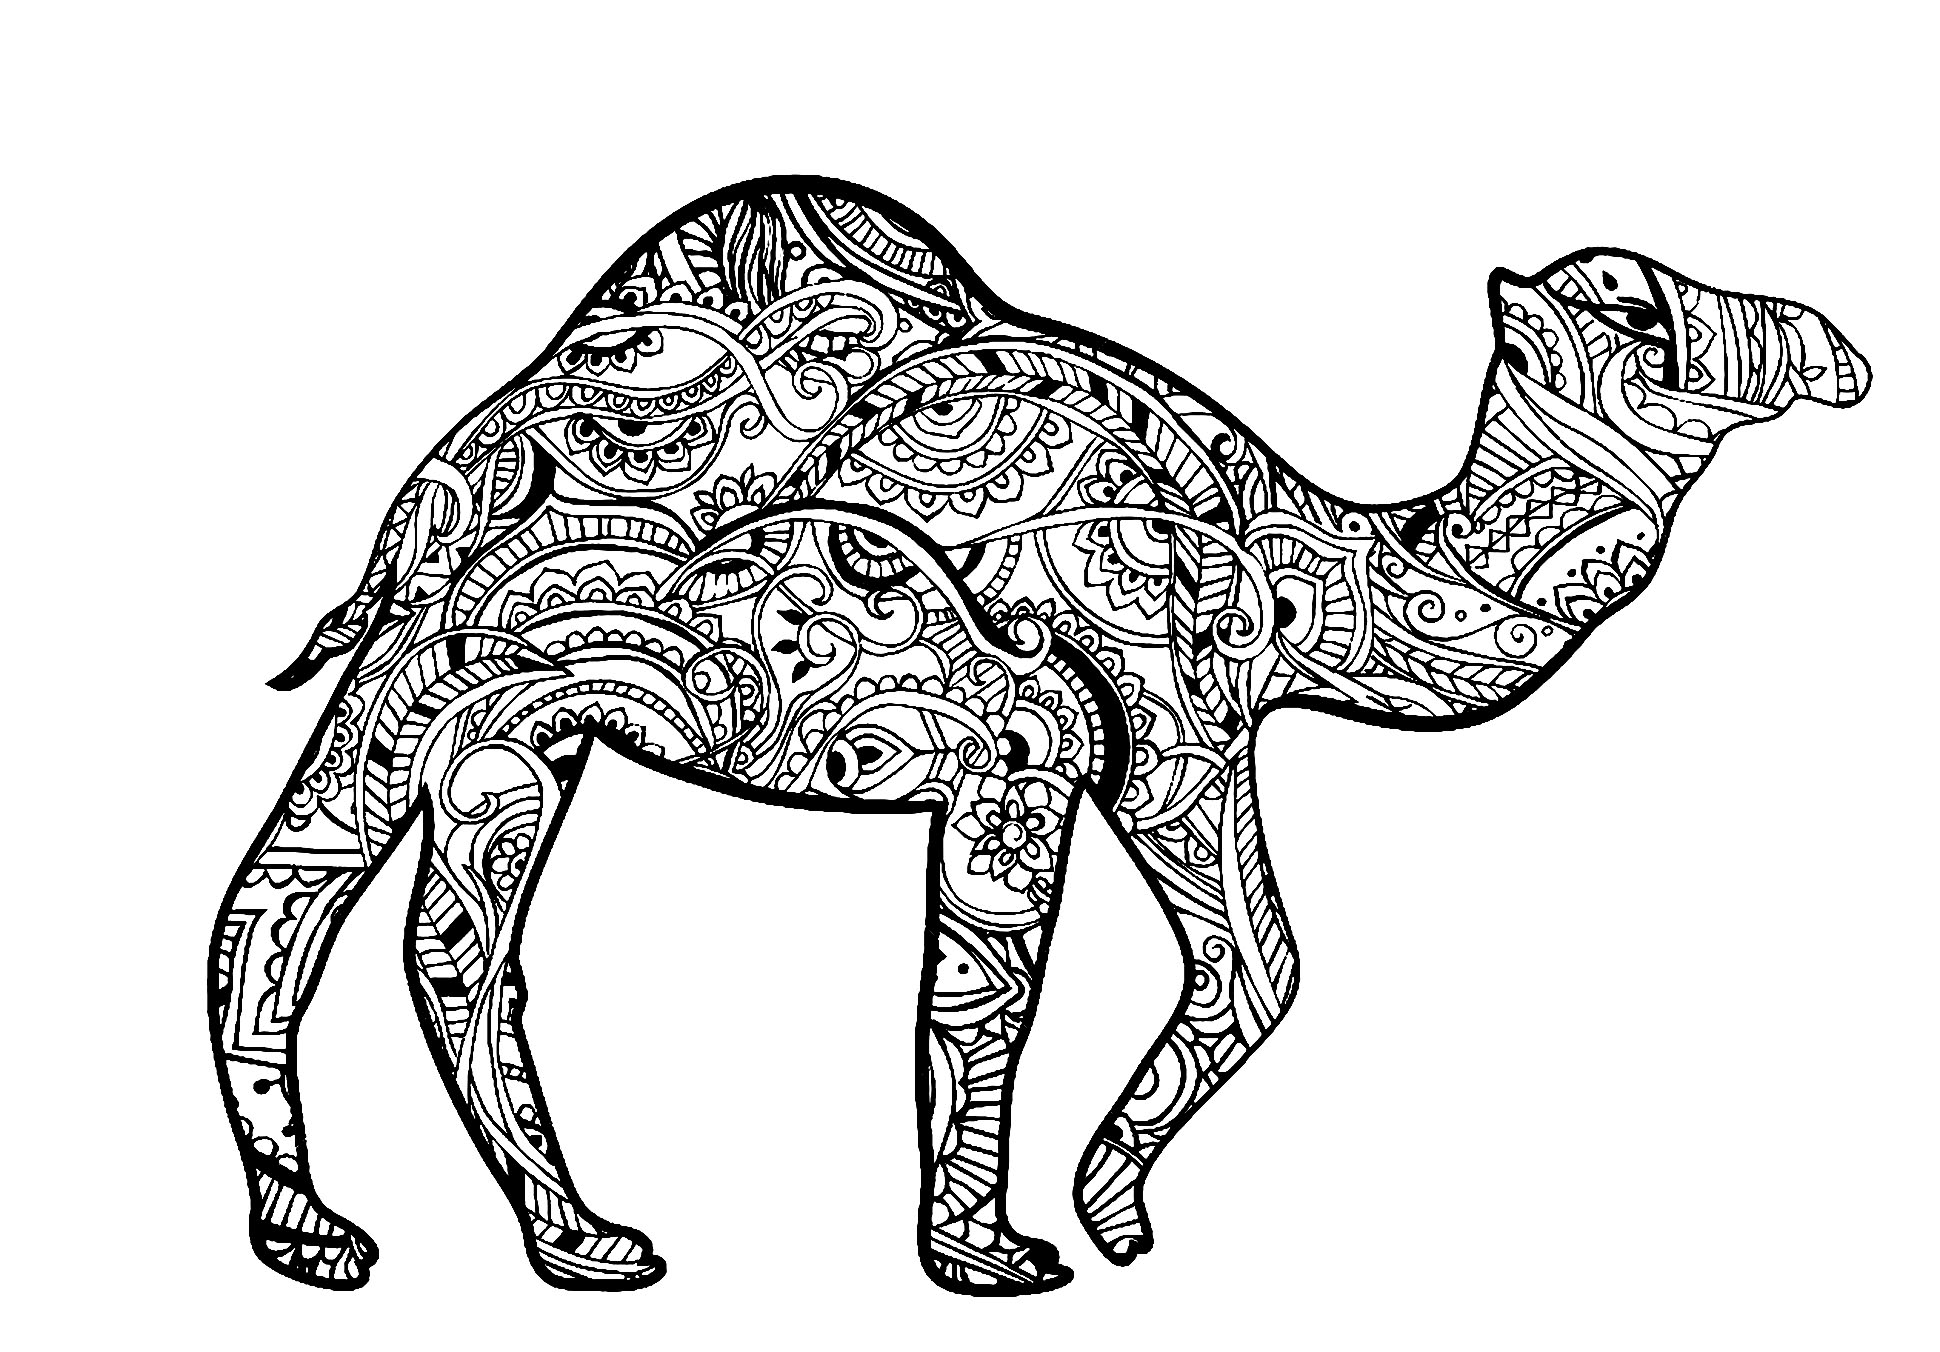 camels coloring pages camel coloring pages for students preschool and kindergarten coloring camels pages